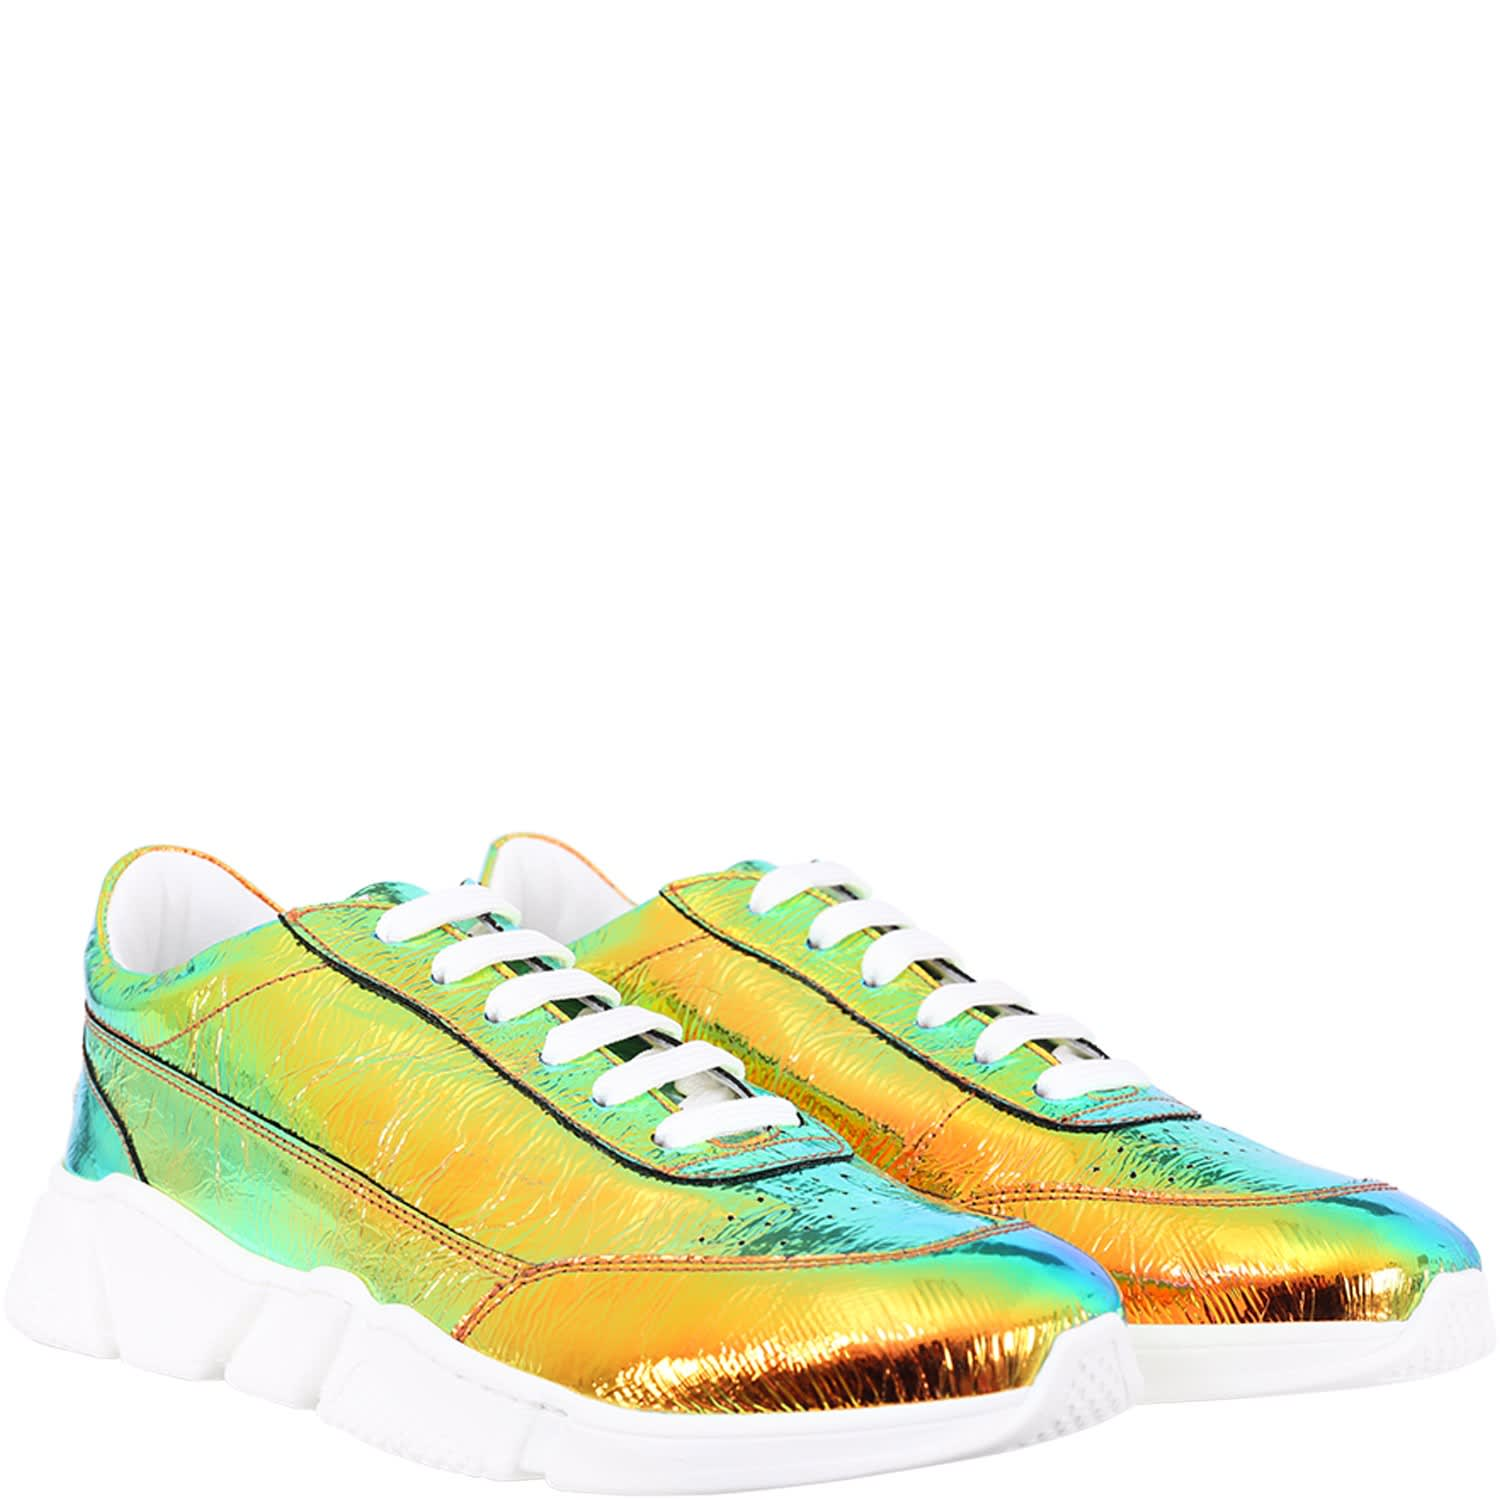 Colorful Sneakers For Kids With White Logo